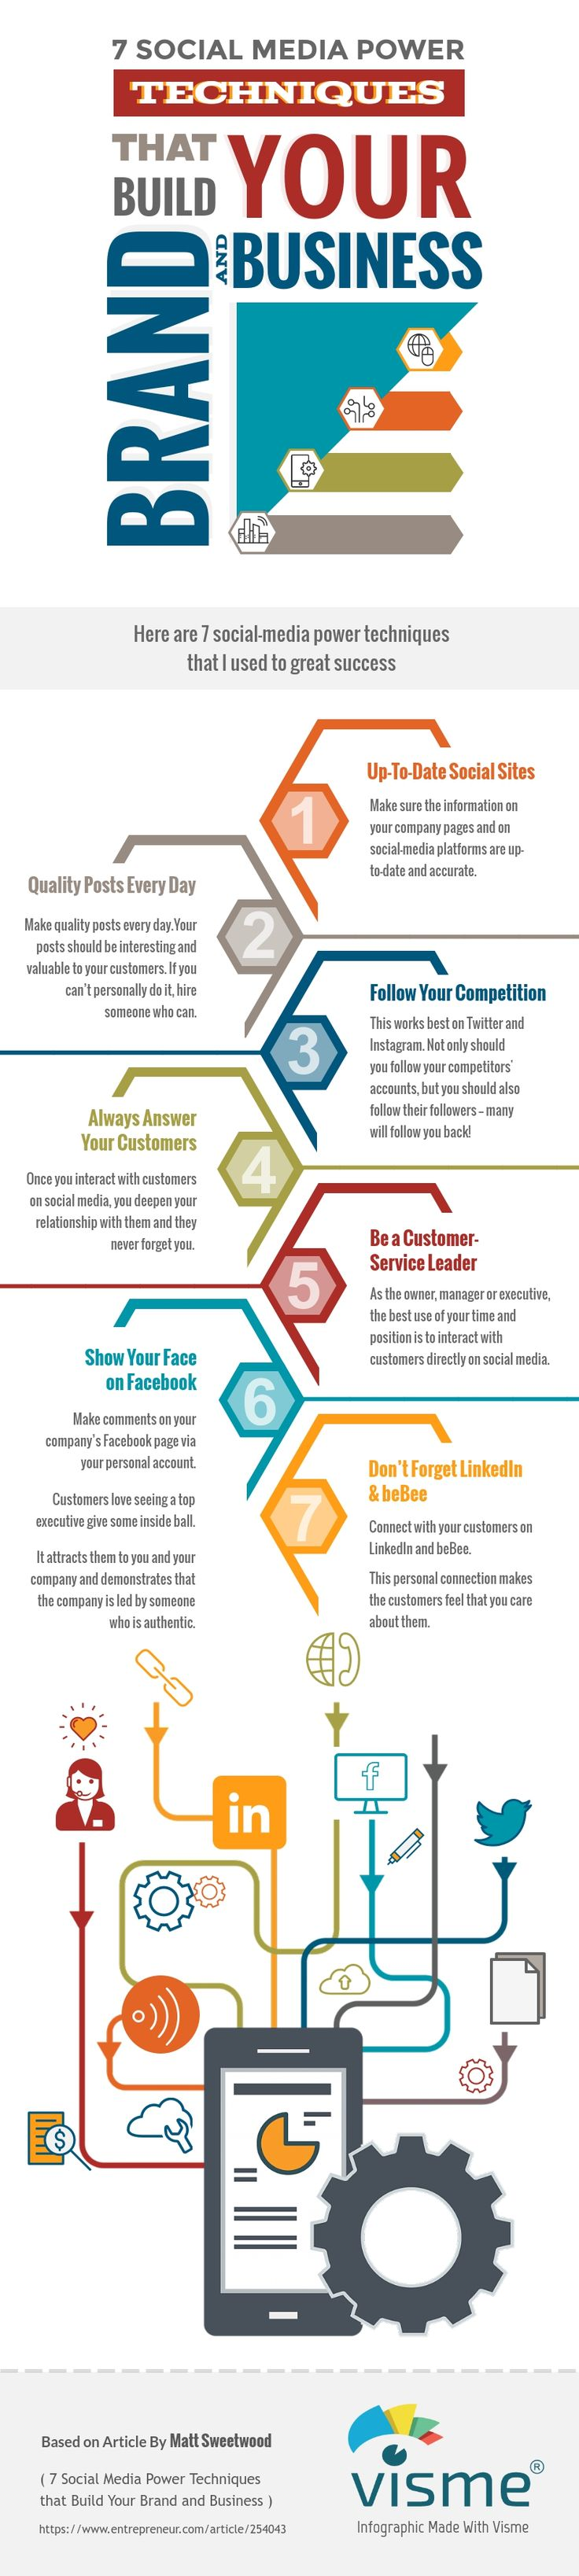 https://social-media-strategy-template.blogspot.com/ 7 Social Media Power Techniques That Build Your Brand And Business - #infographic